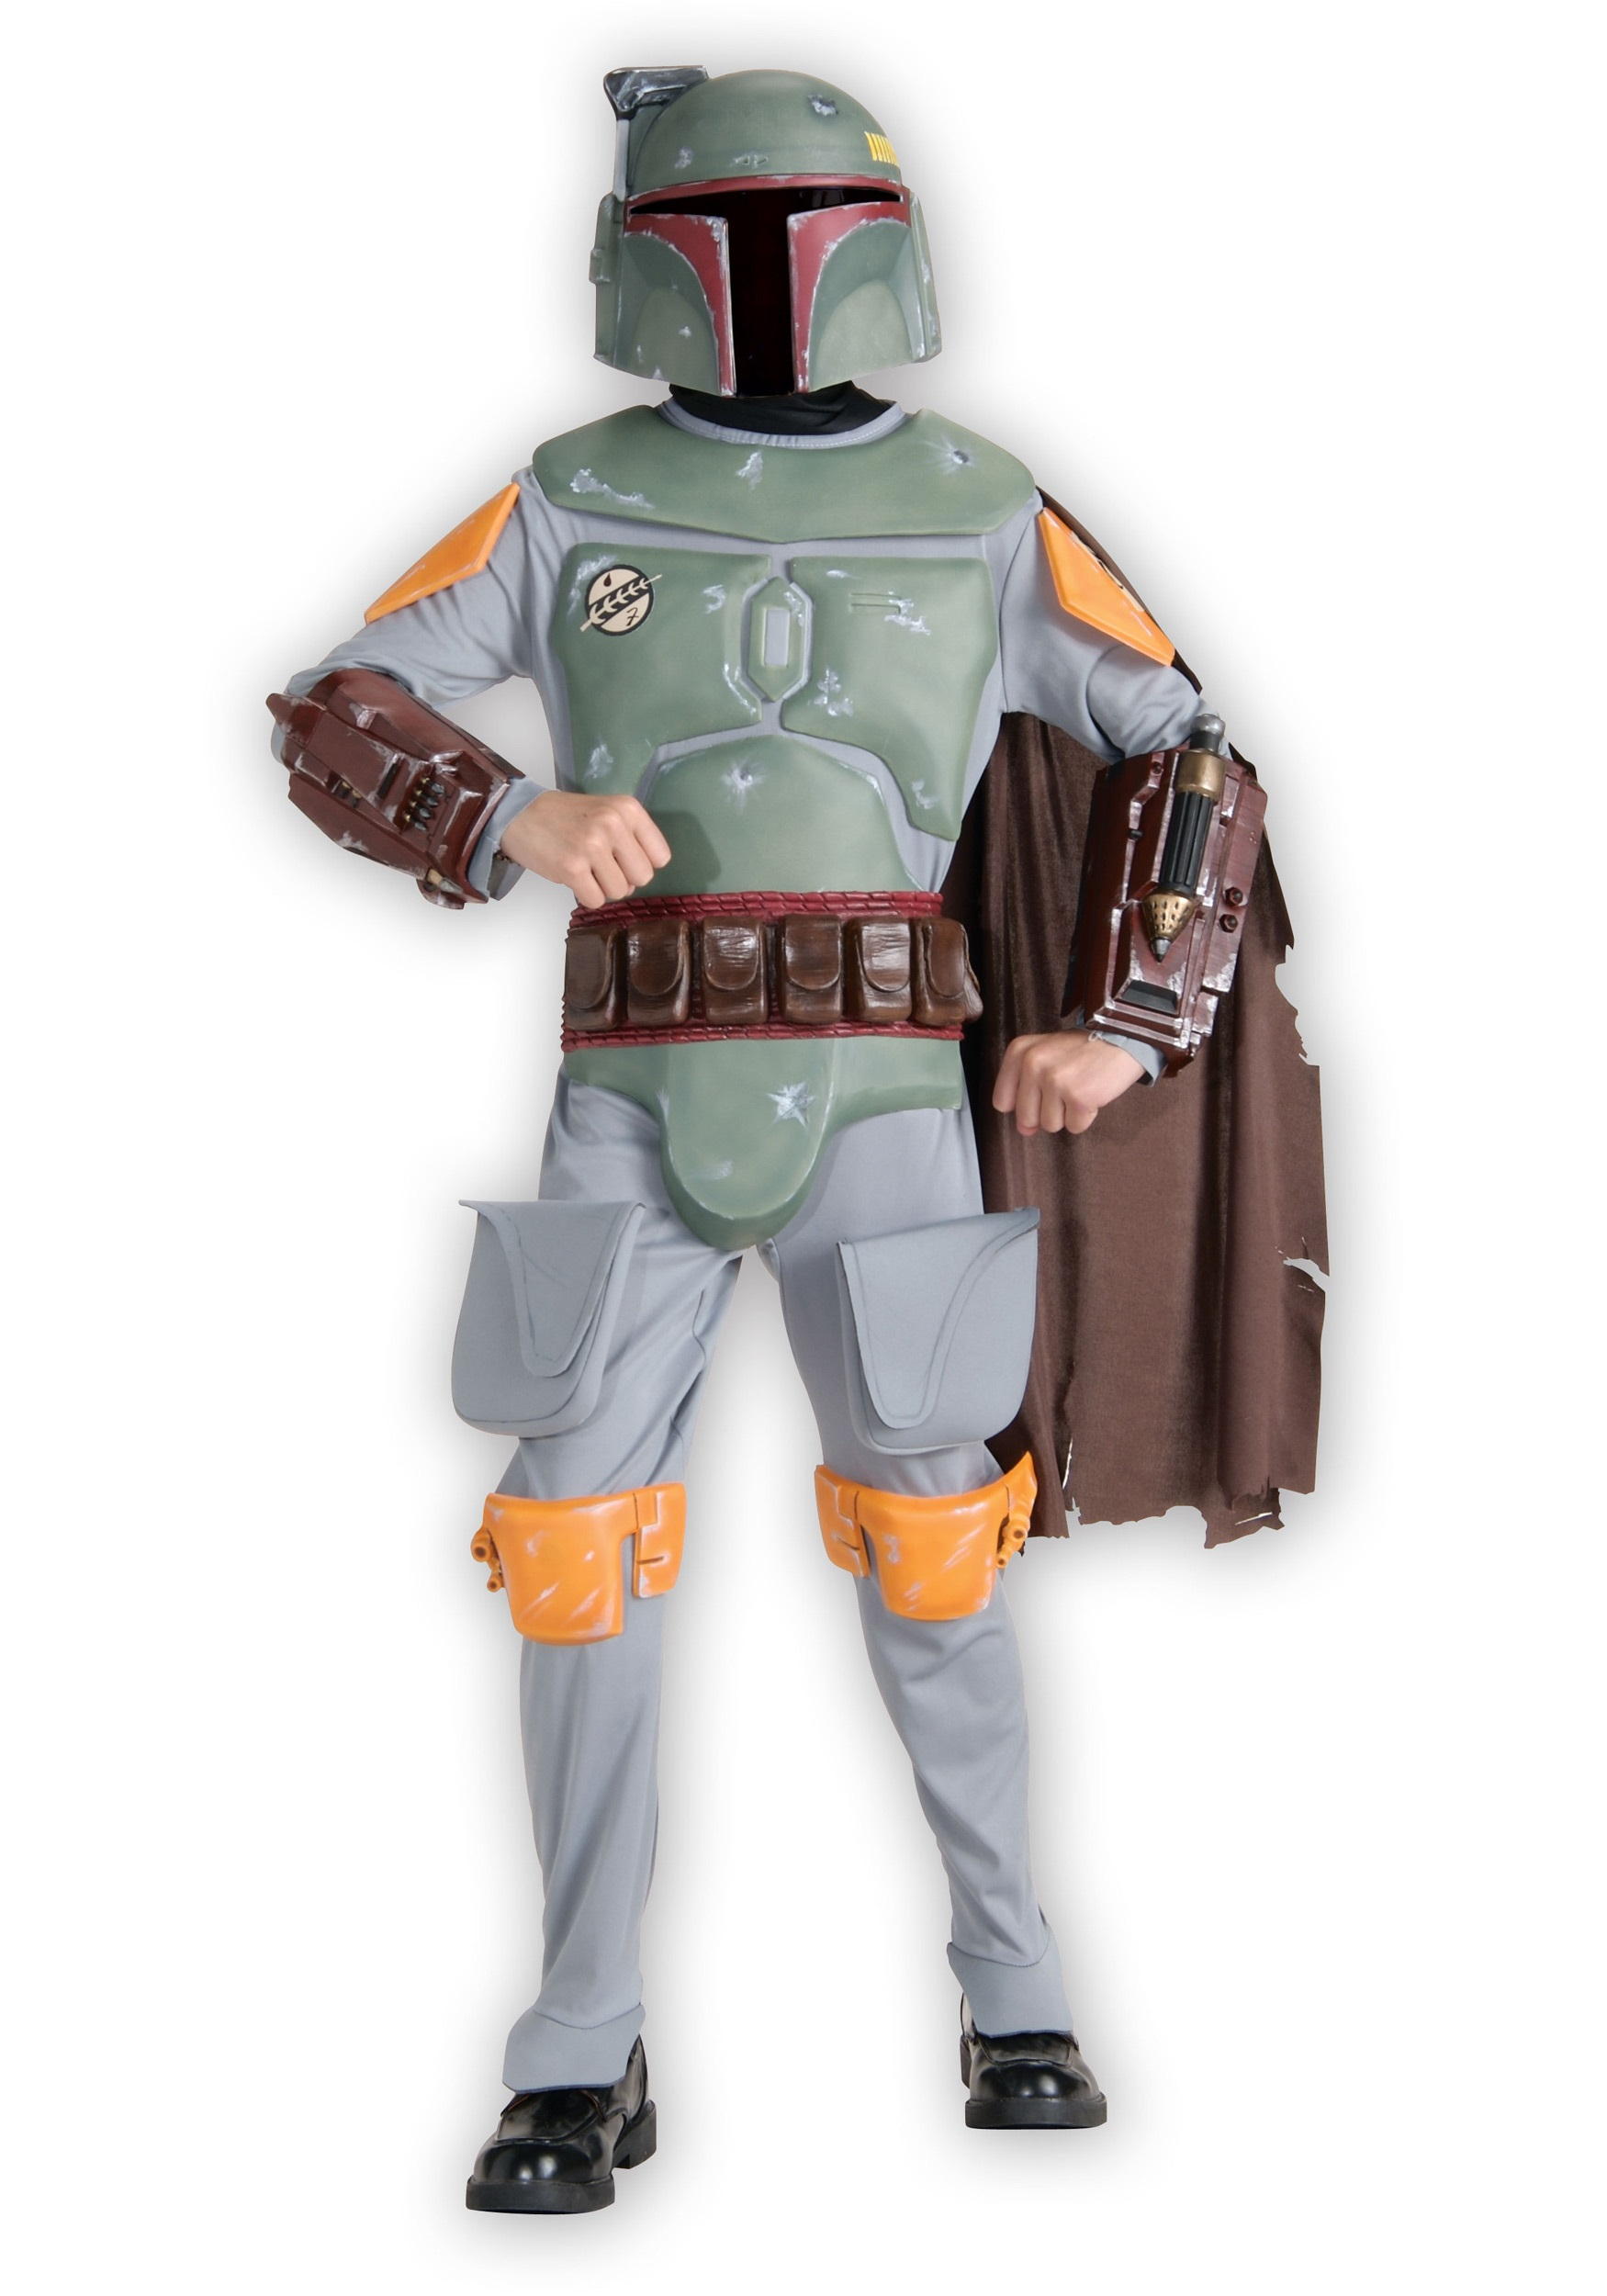 Star Wars Boba Fett Deluxe Boys Costume  sc 1 st  Fun.com & Star Wars Boba Fett Deluxe Costume for Boys